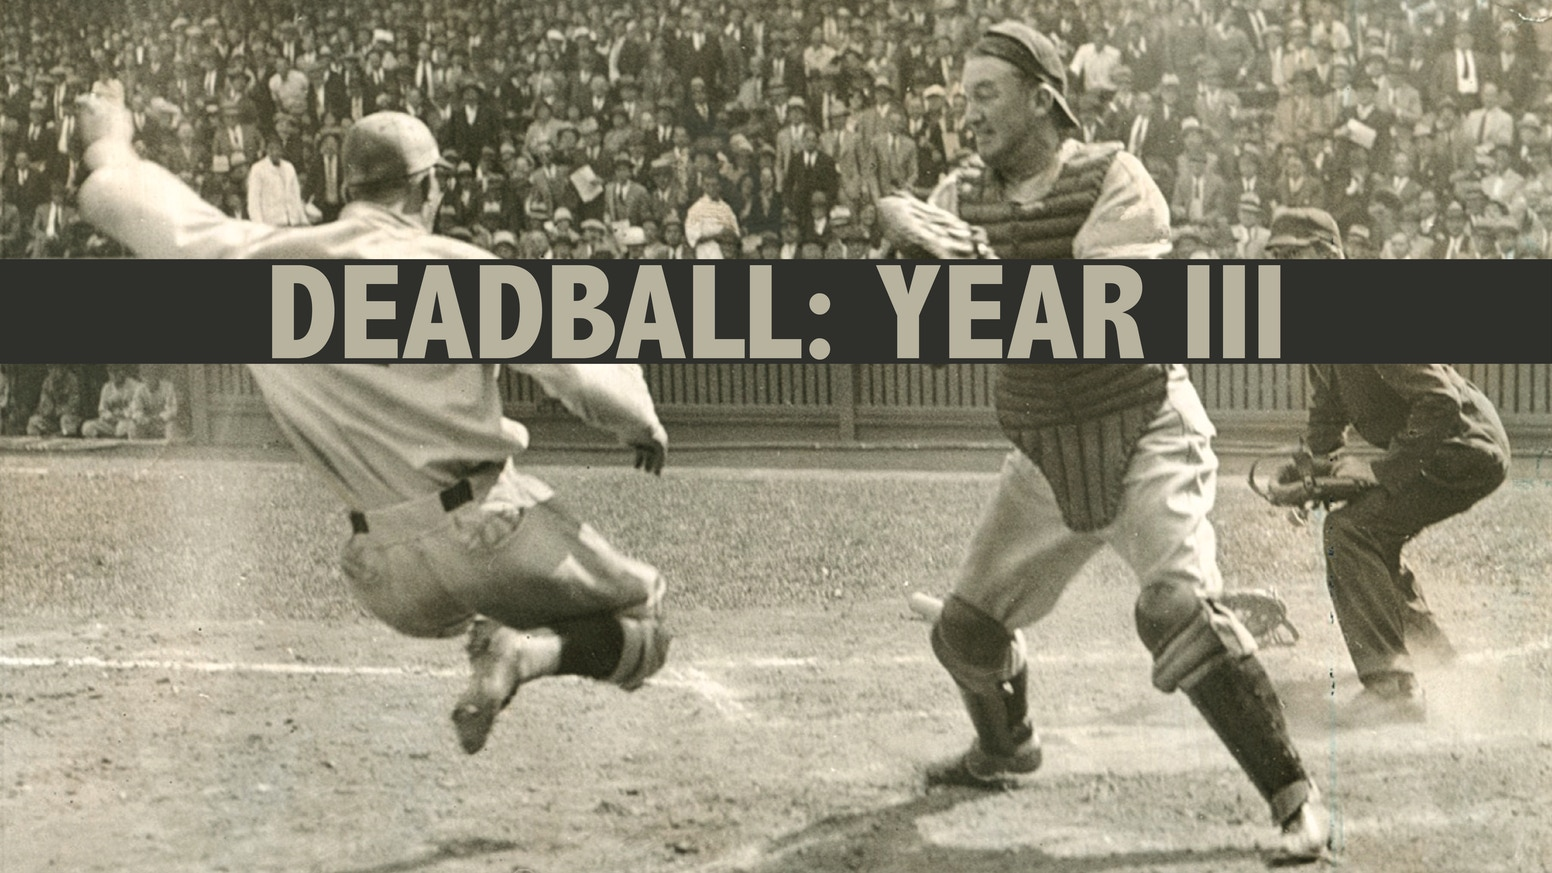 The newest expansion to the bestselling Deadball, Deadball: Year III celebrates baseball's notorious scoundrels and cheats.